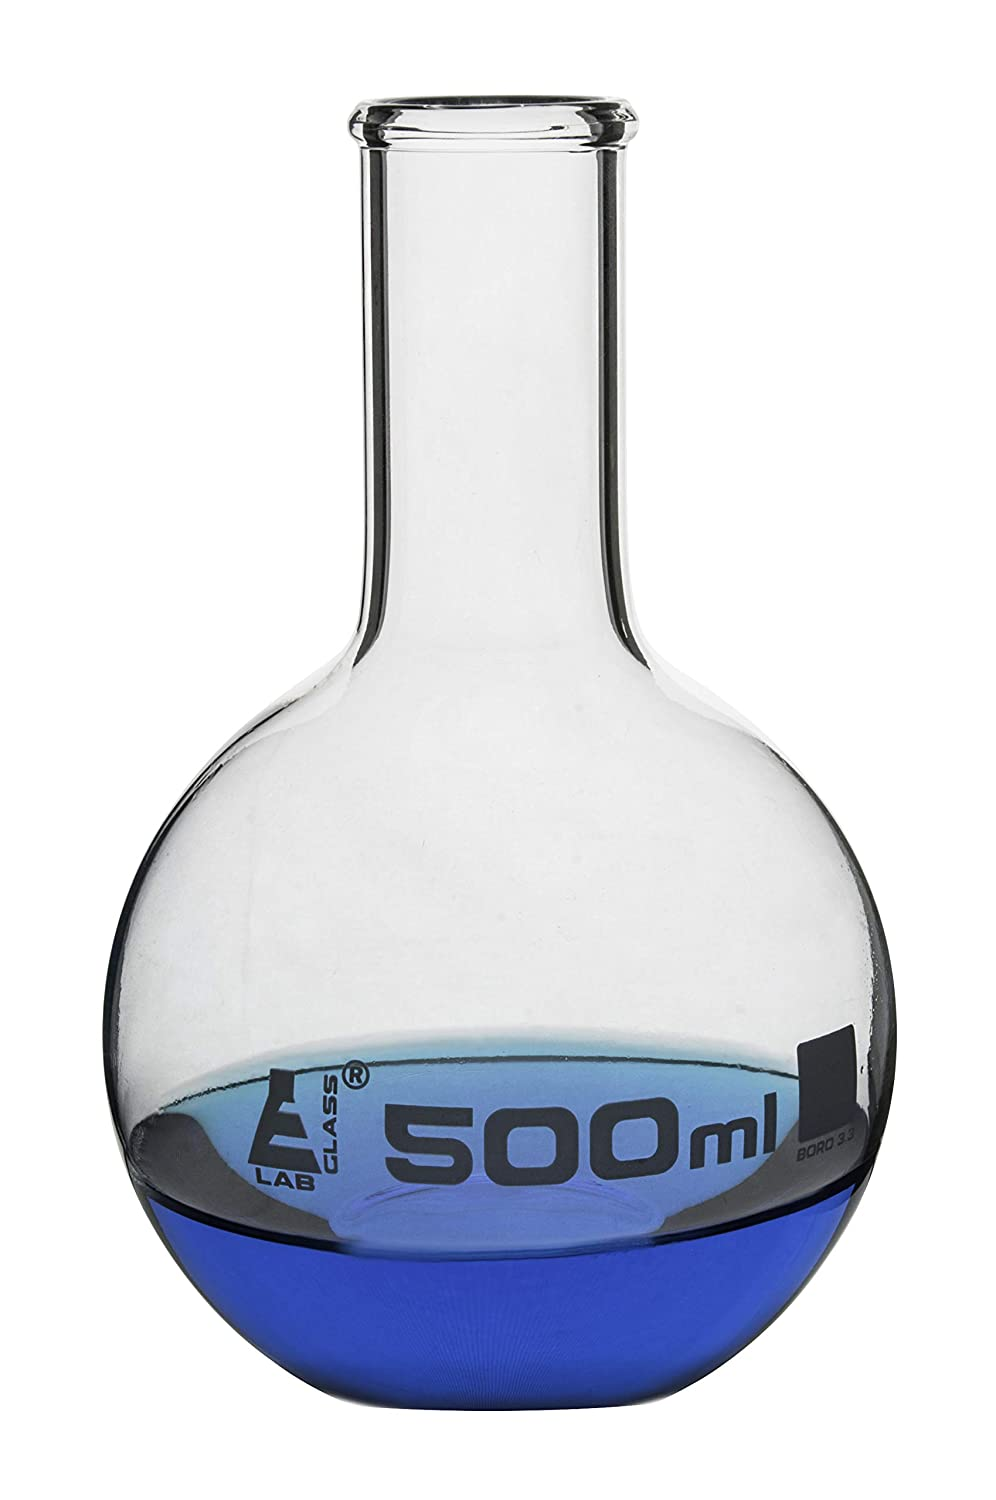 Eisco Labs 500mL Florence Borosilicate Boiling Flask